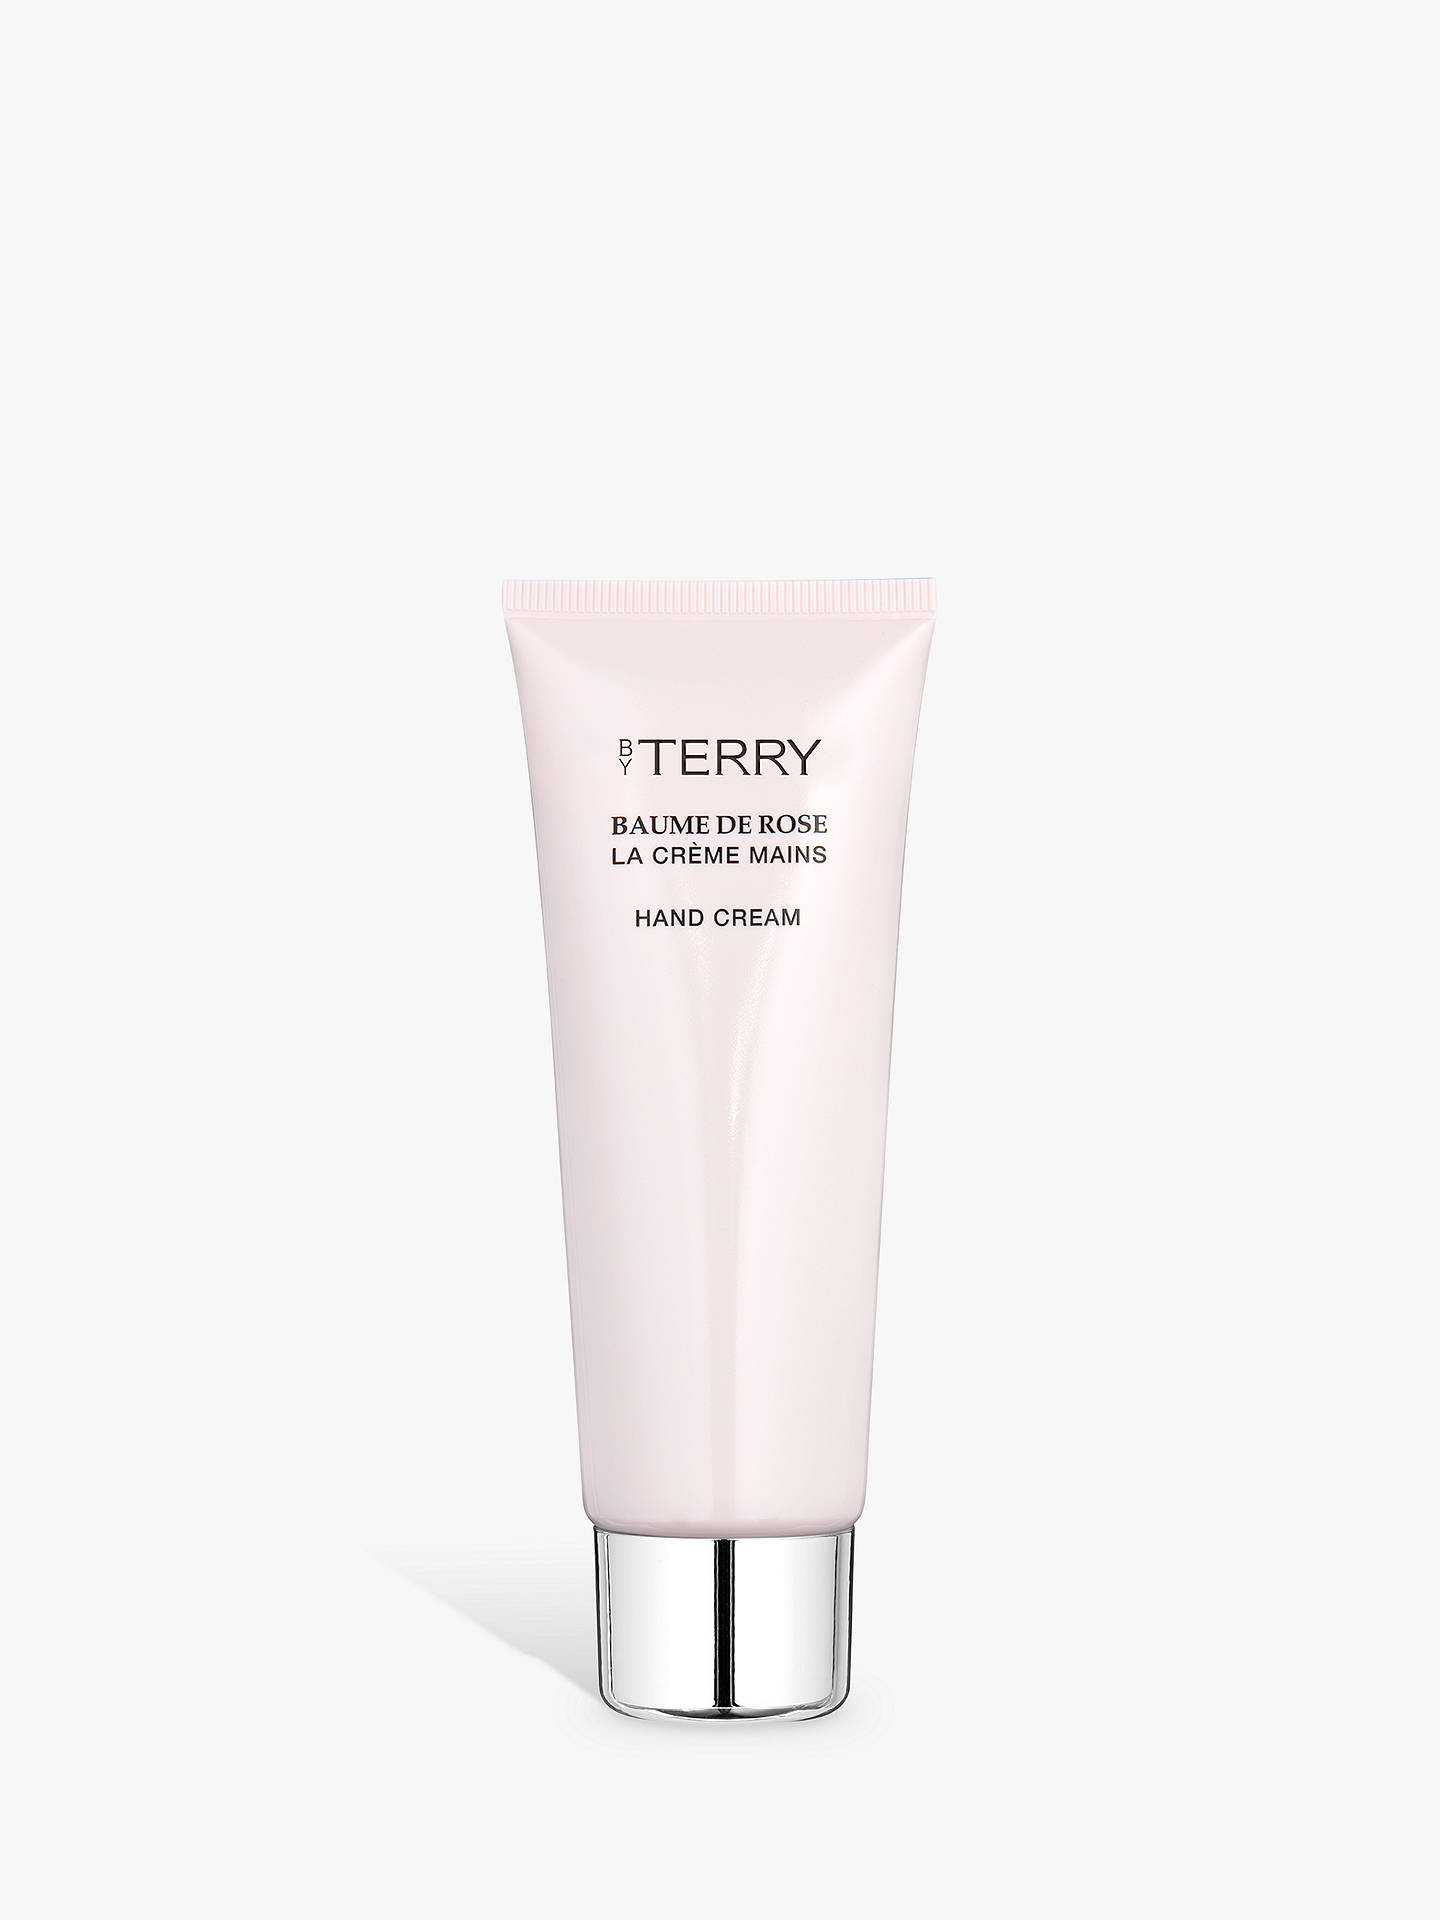 Buy BY TERRY Baume de Rose Hand Cream, 75g Online at johnlewis.com